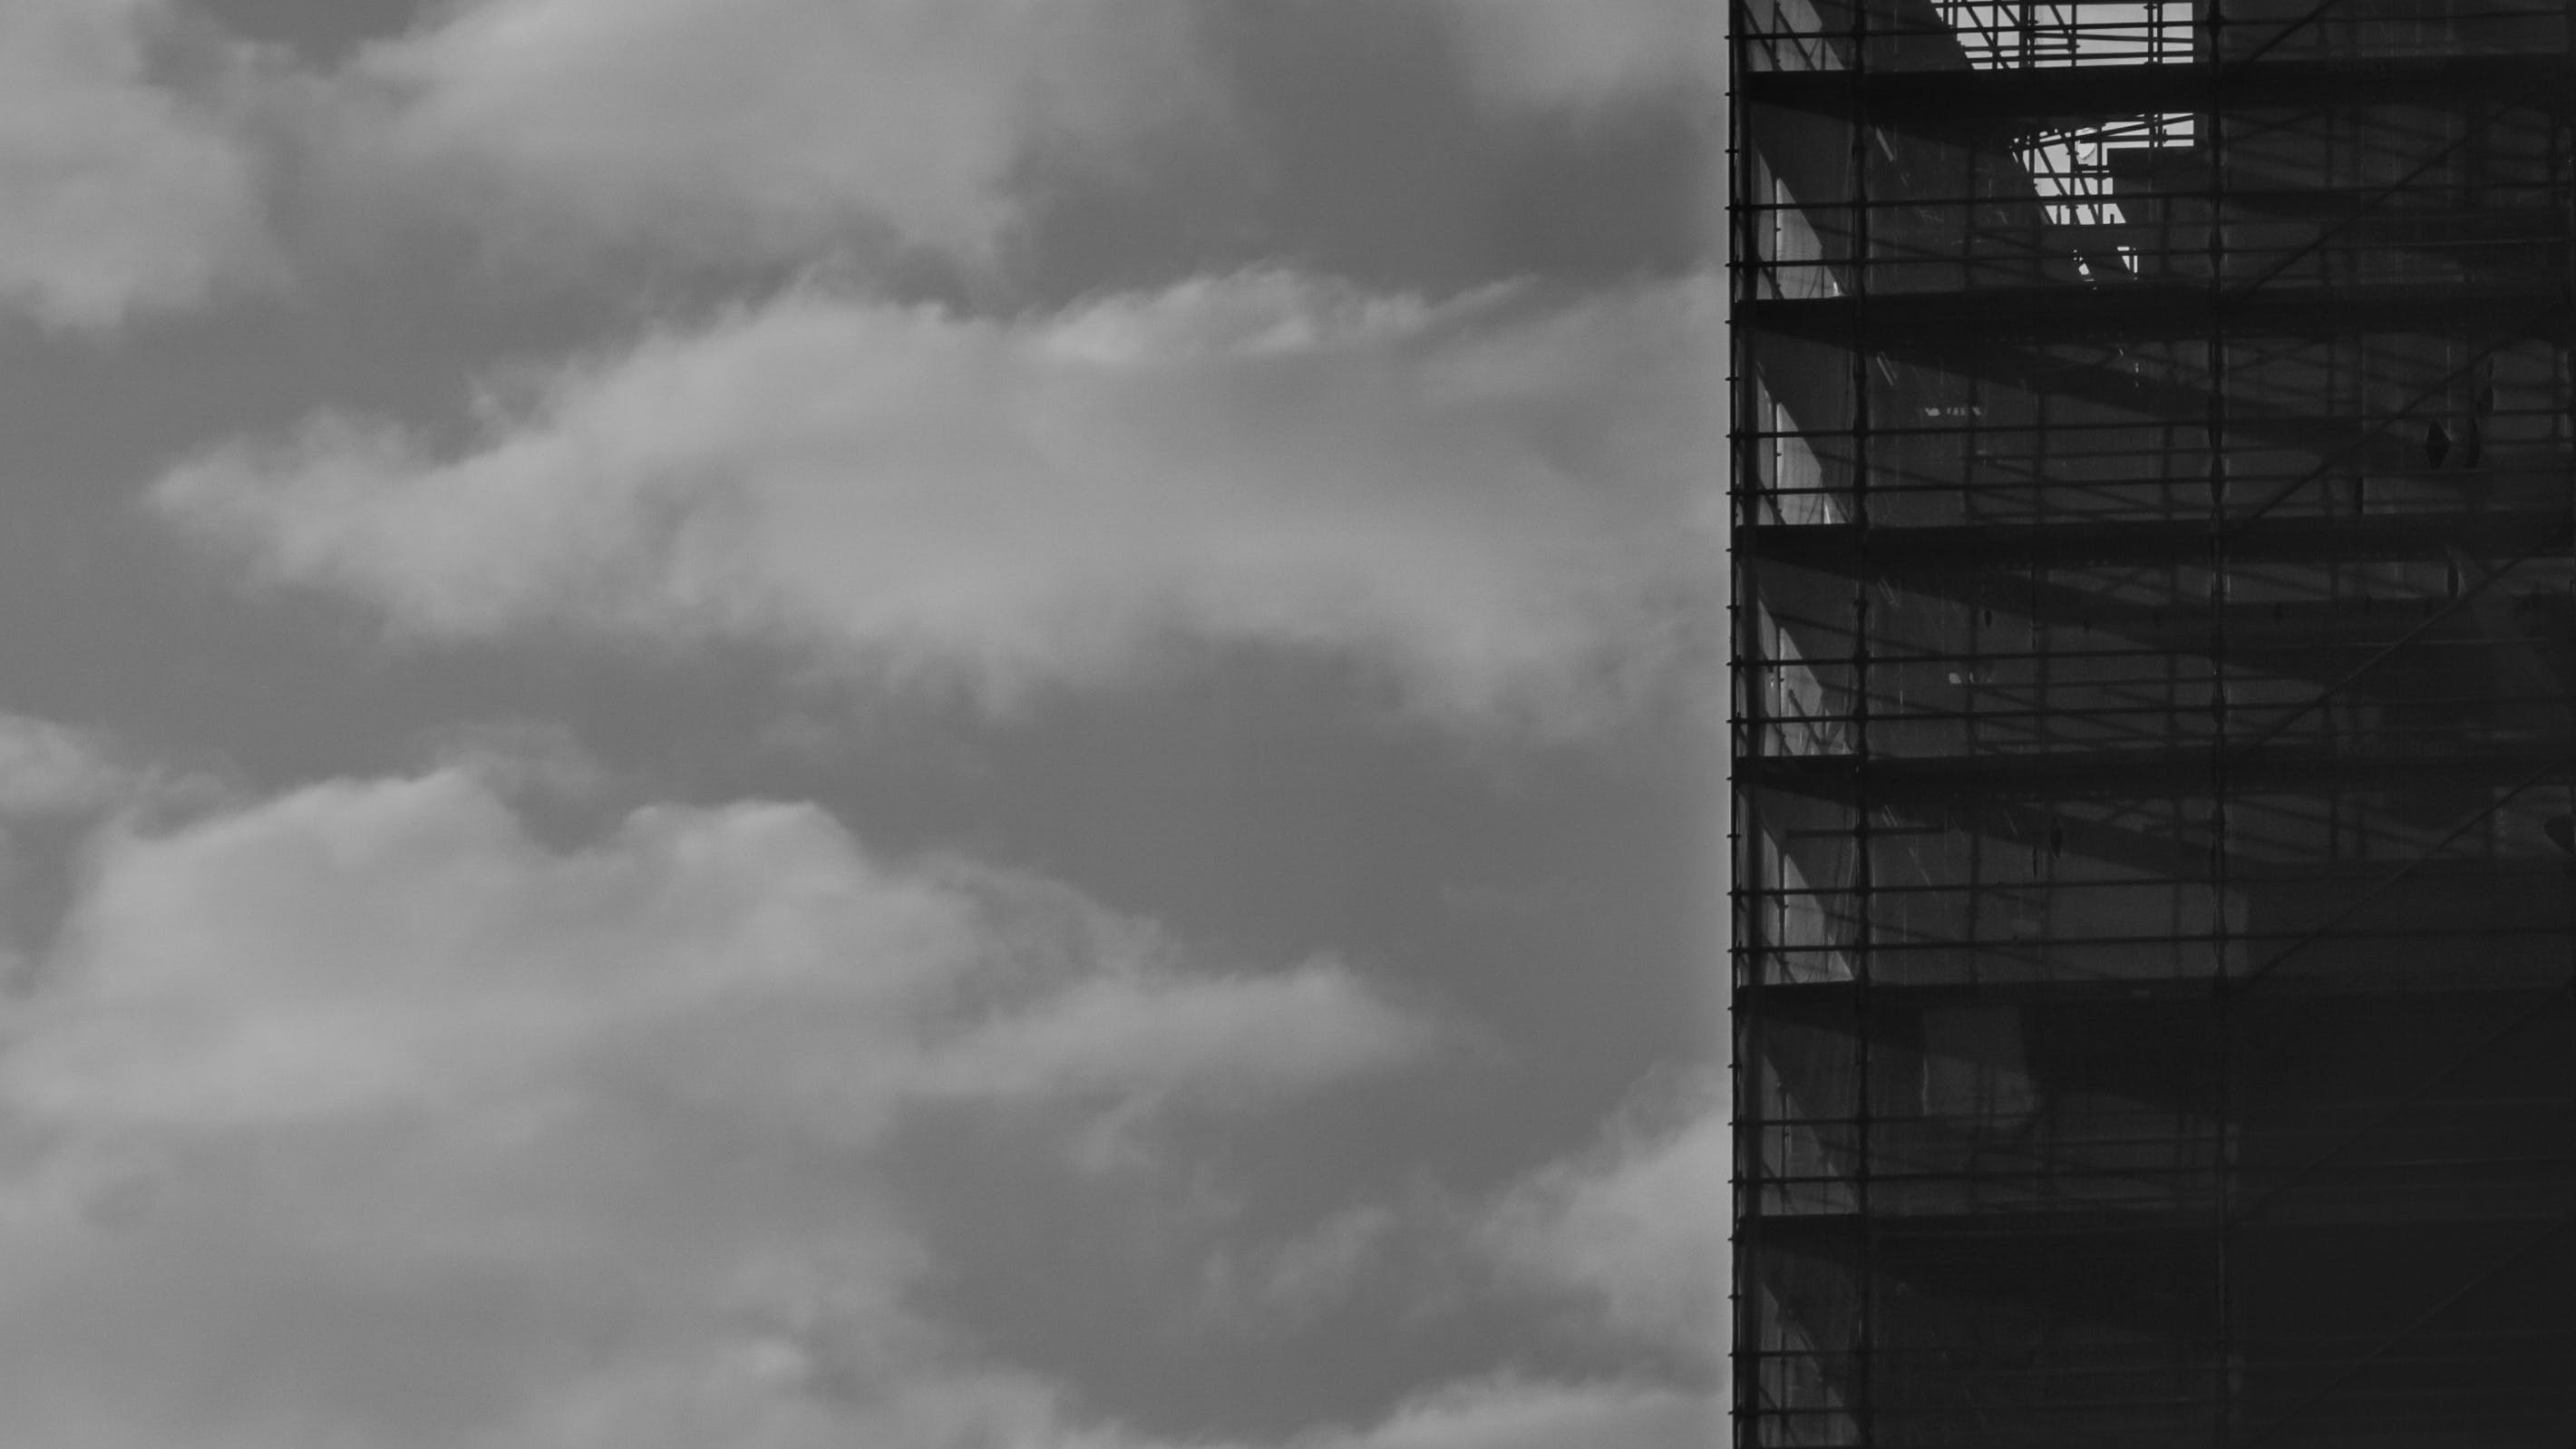 Free stock photo of a6000, black and white, clouds, free